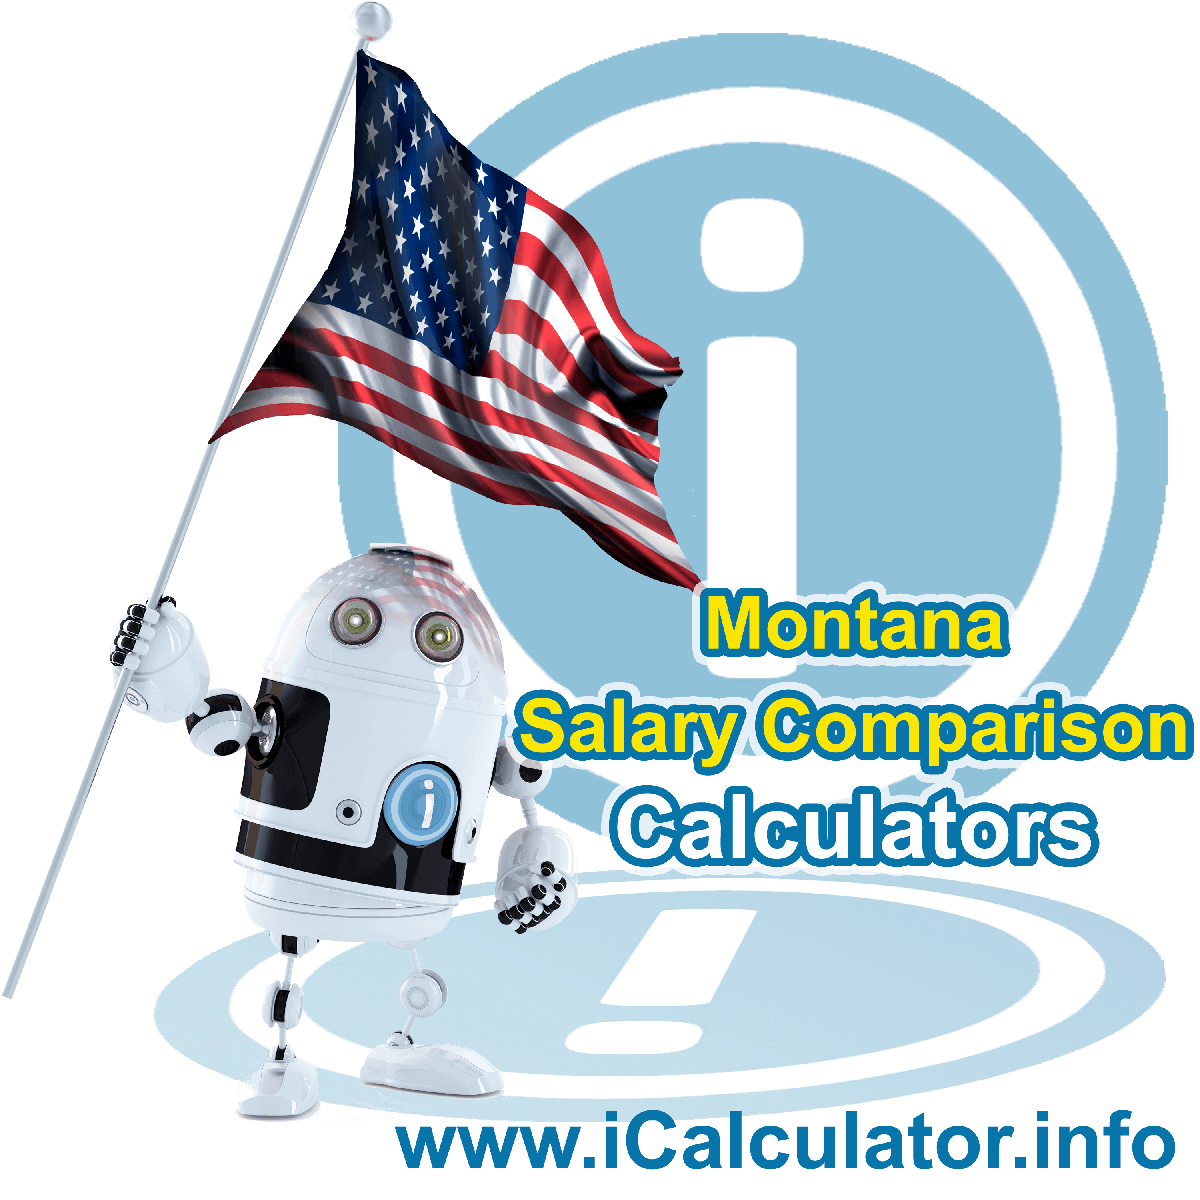 Montana Salary Comparison Calculator 2020 | iCalculator | The Montana Salary Comparison Calculator allows you to quickly calculate and compare upto 6 salaries in Montana or between other states for the 2020 tax year and historical tax years. Its an excellent tool for jobseekers, pay raise comparison and comparison of salaries between different US States